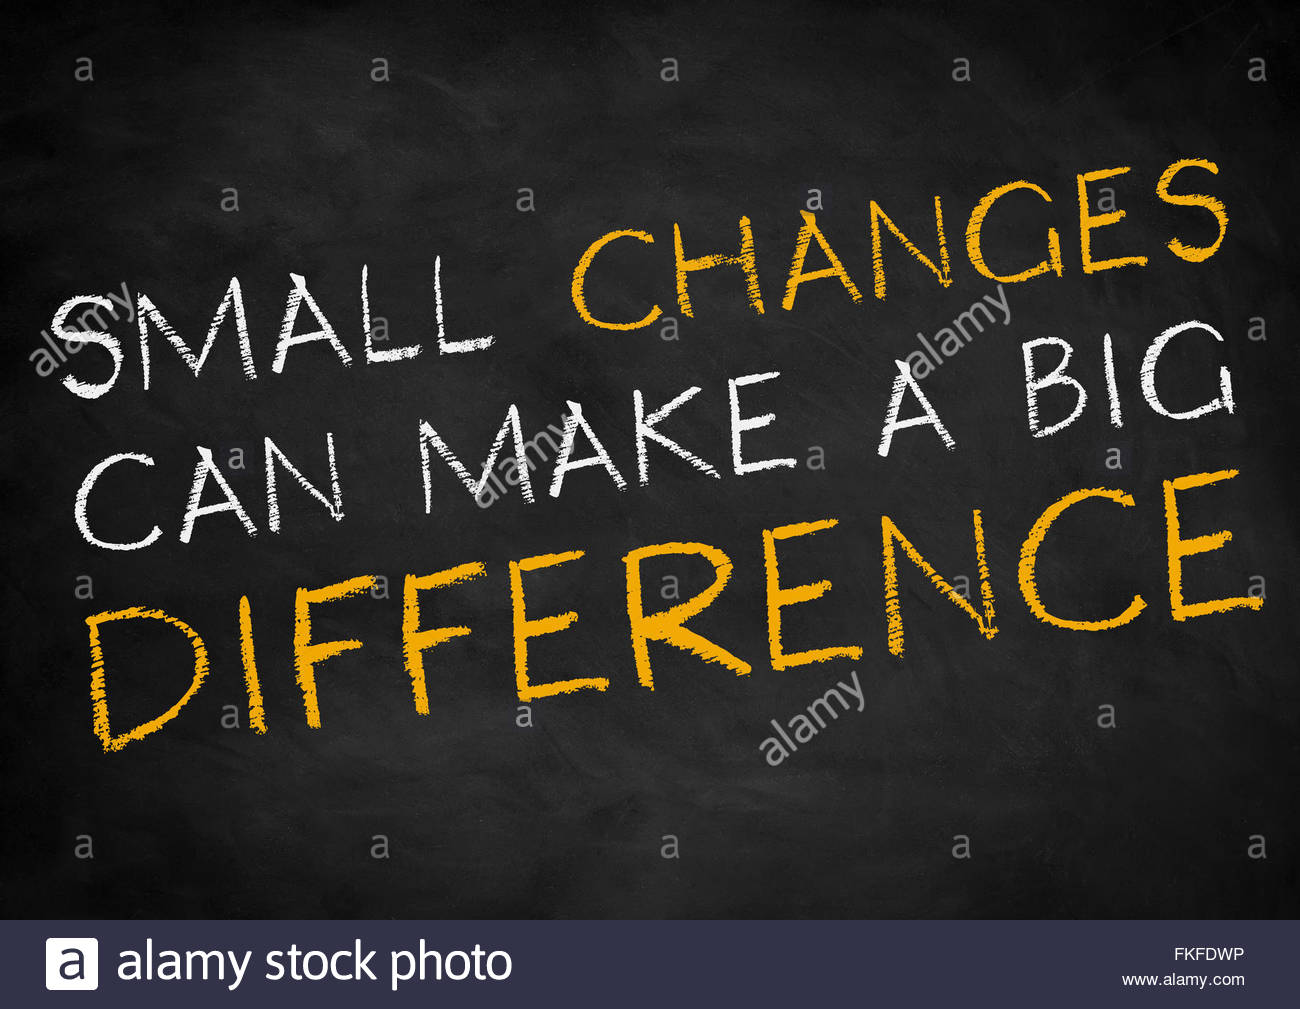 Small changes can make a big difference - Stock Image